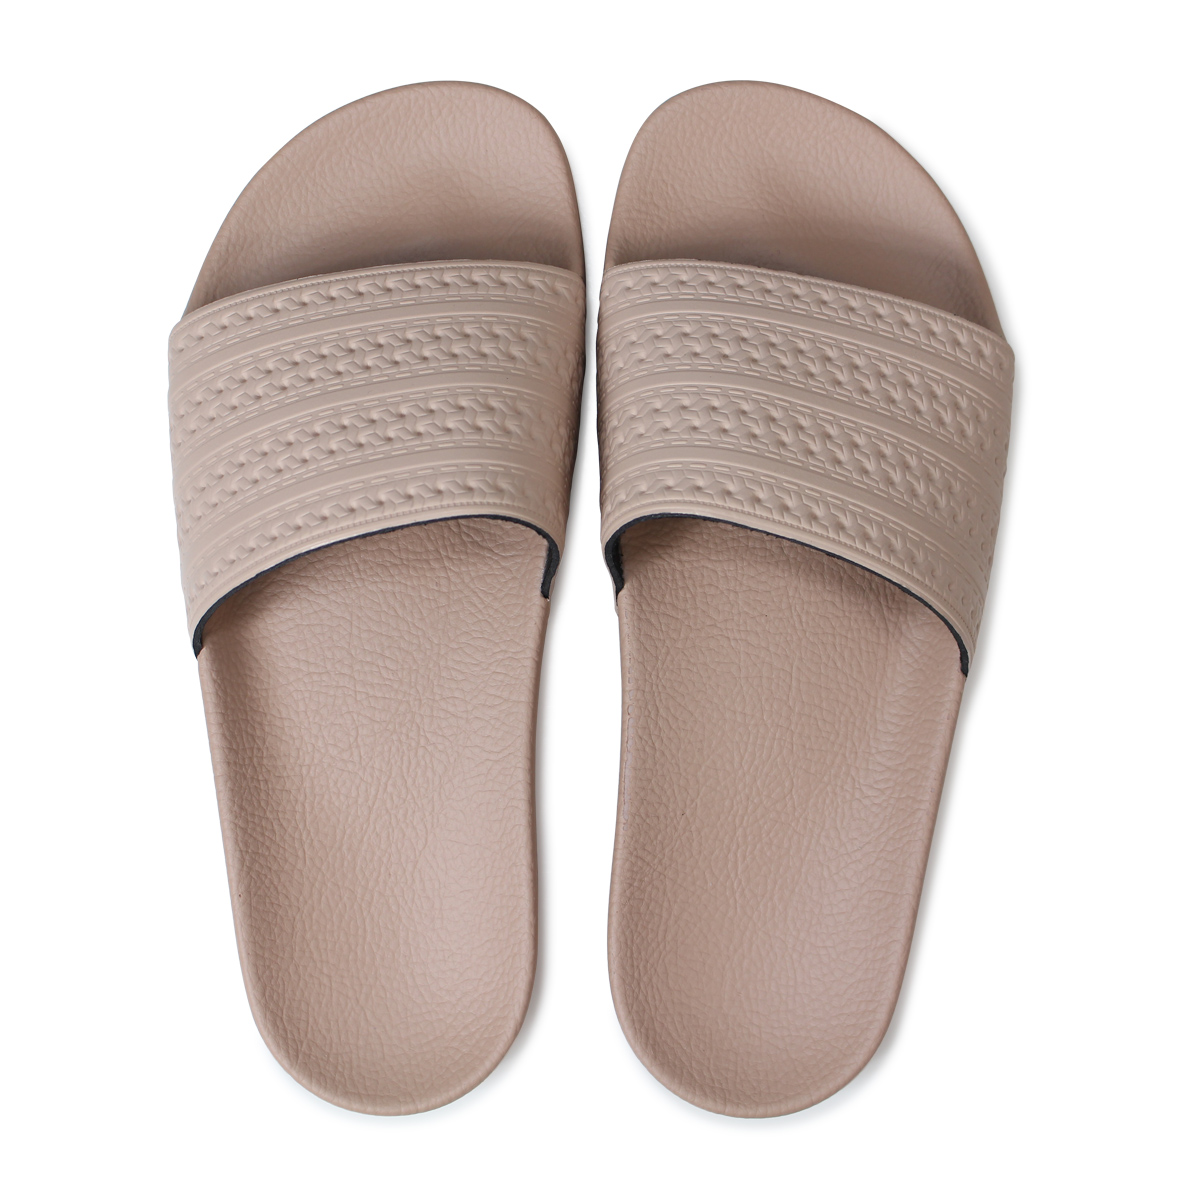 b350f7646ff1 adidas Originals WOMENS ADILETTE SLIDES アディダスアディレッタレディースサンダルシャワーサンダル CQ2235  pink beige originals  load planned Shinnyu load in ...